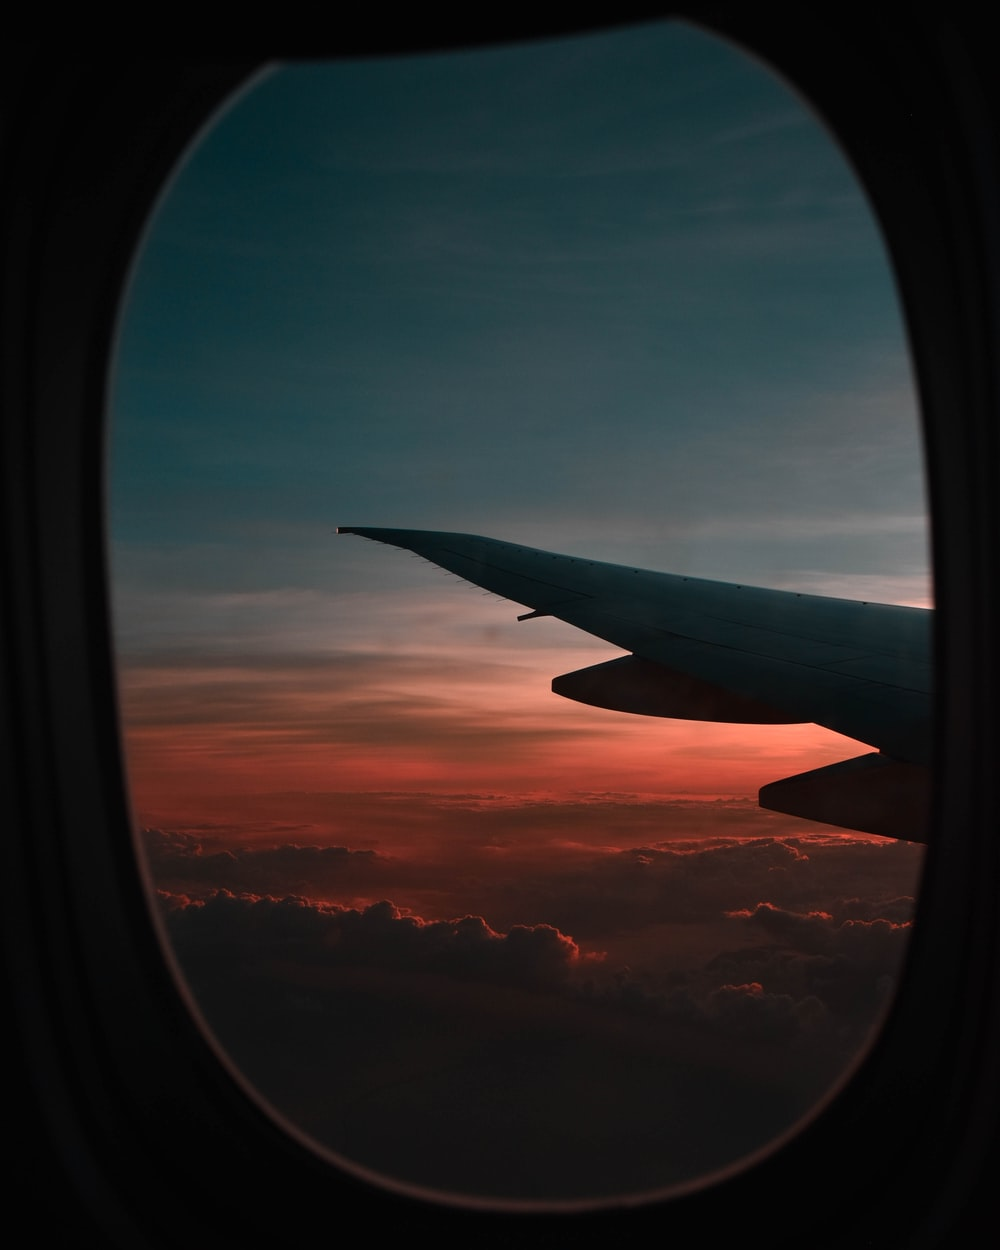 window view of airplane during golden hour